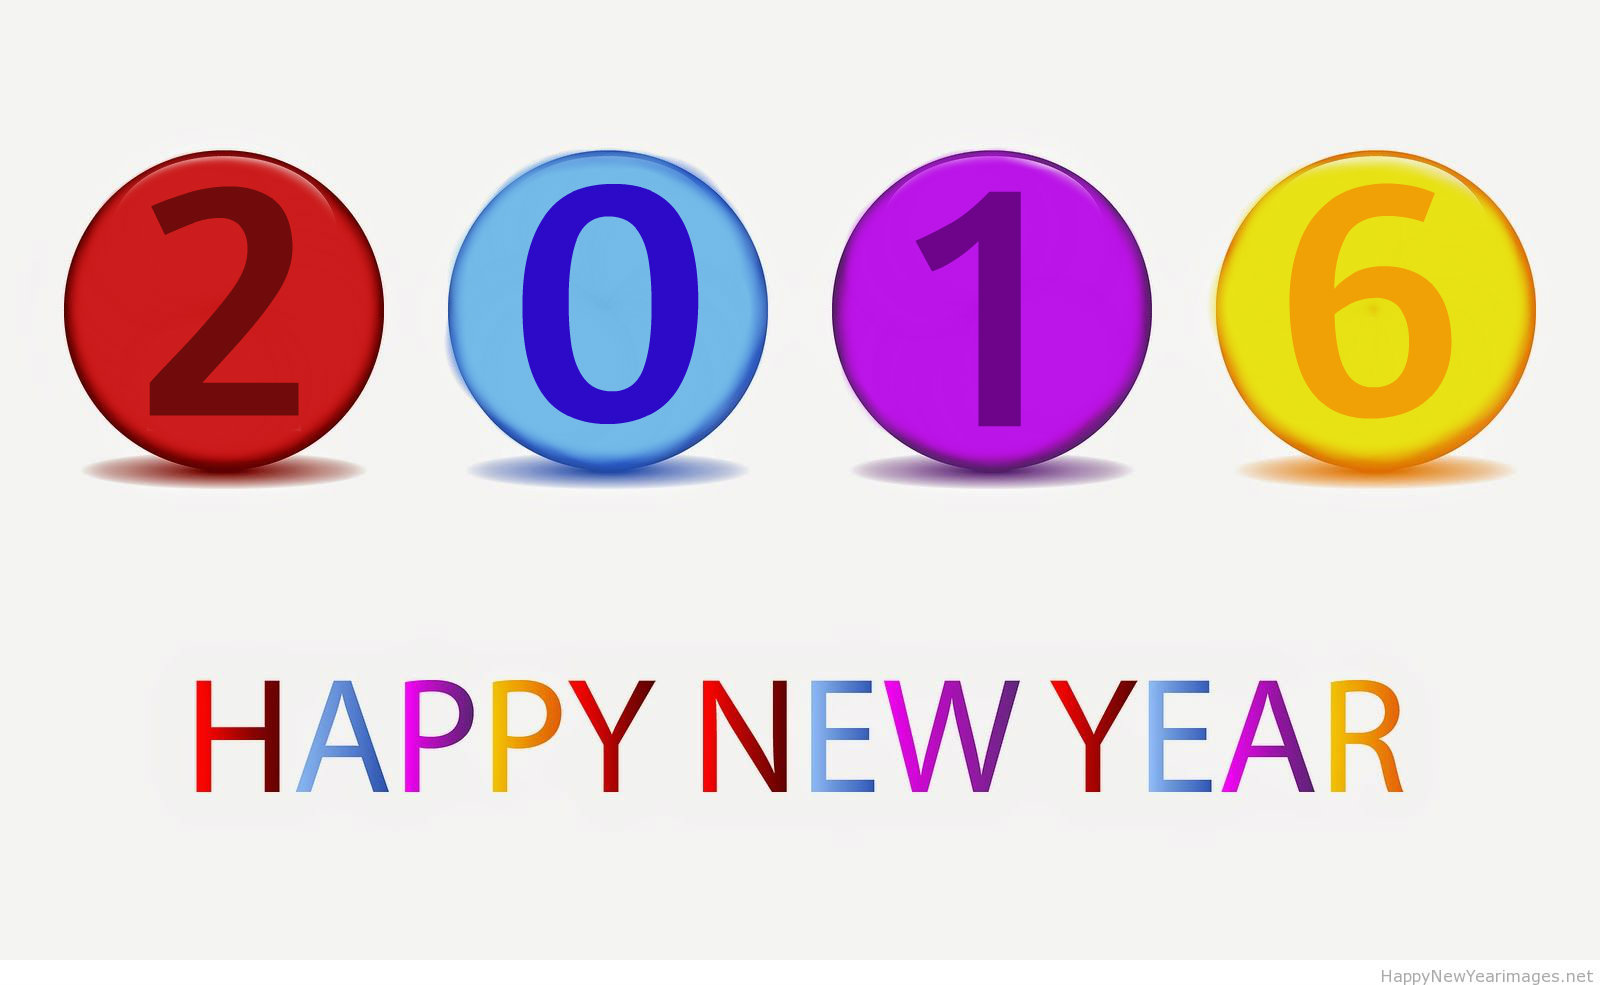 Cameraman clipart 6 happy new year wishes picture welcome